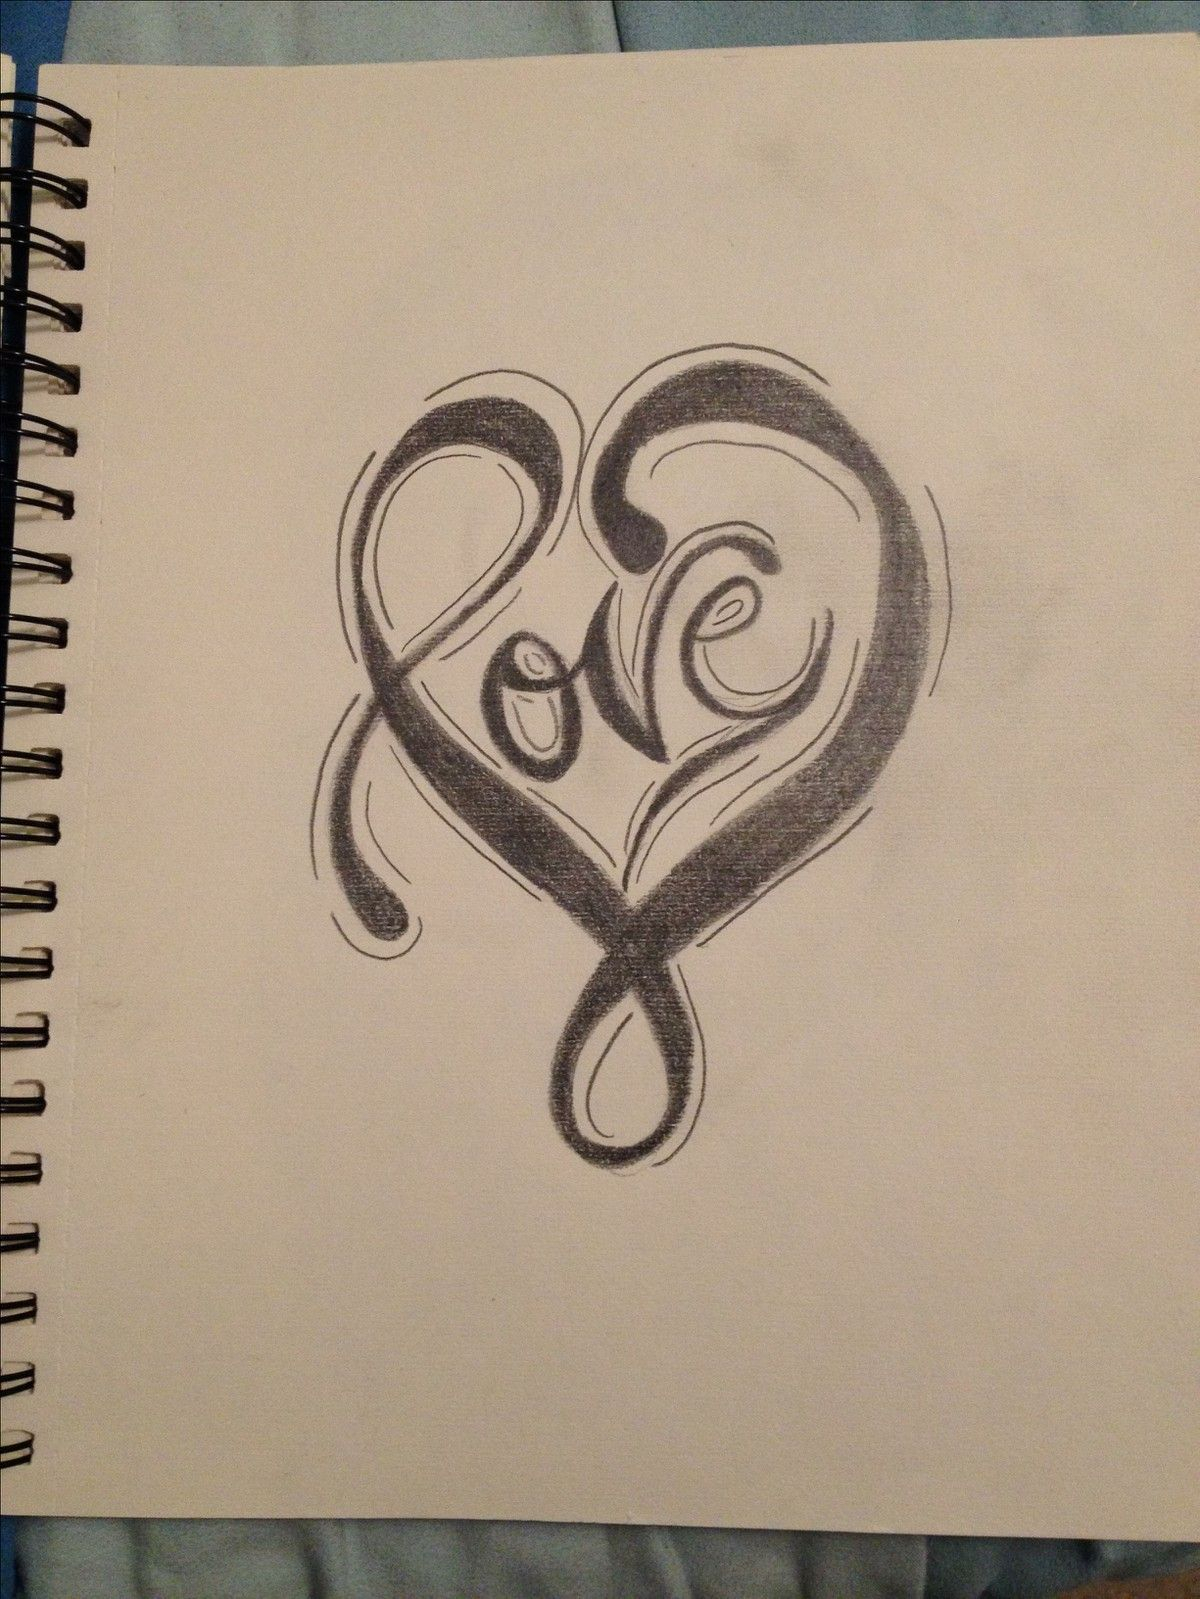 TOP 15 Cute Quotes With Drawings - Page 11 of 17 - QuotesPost